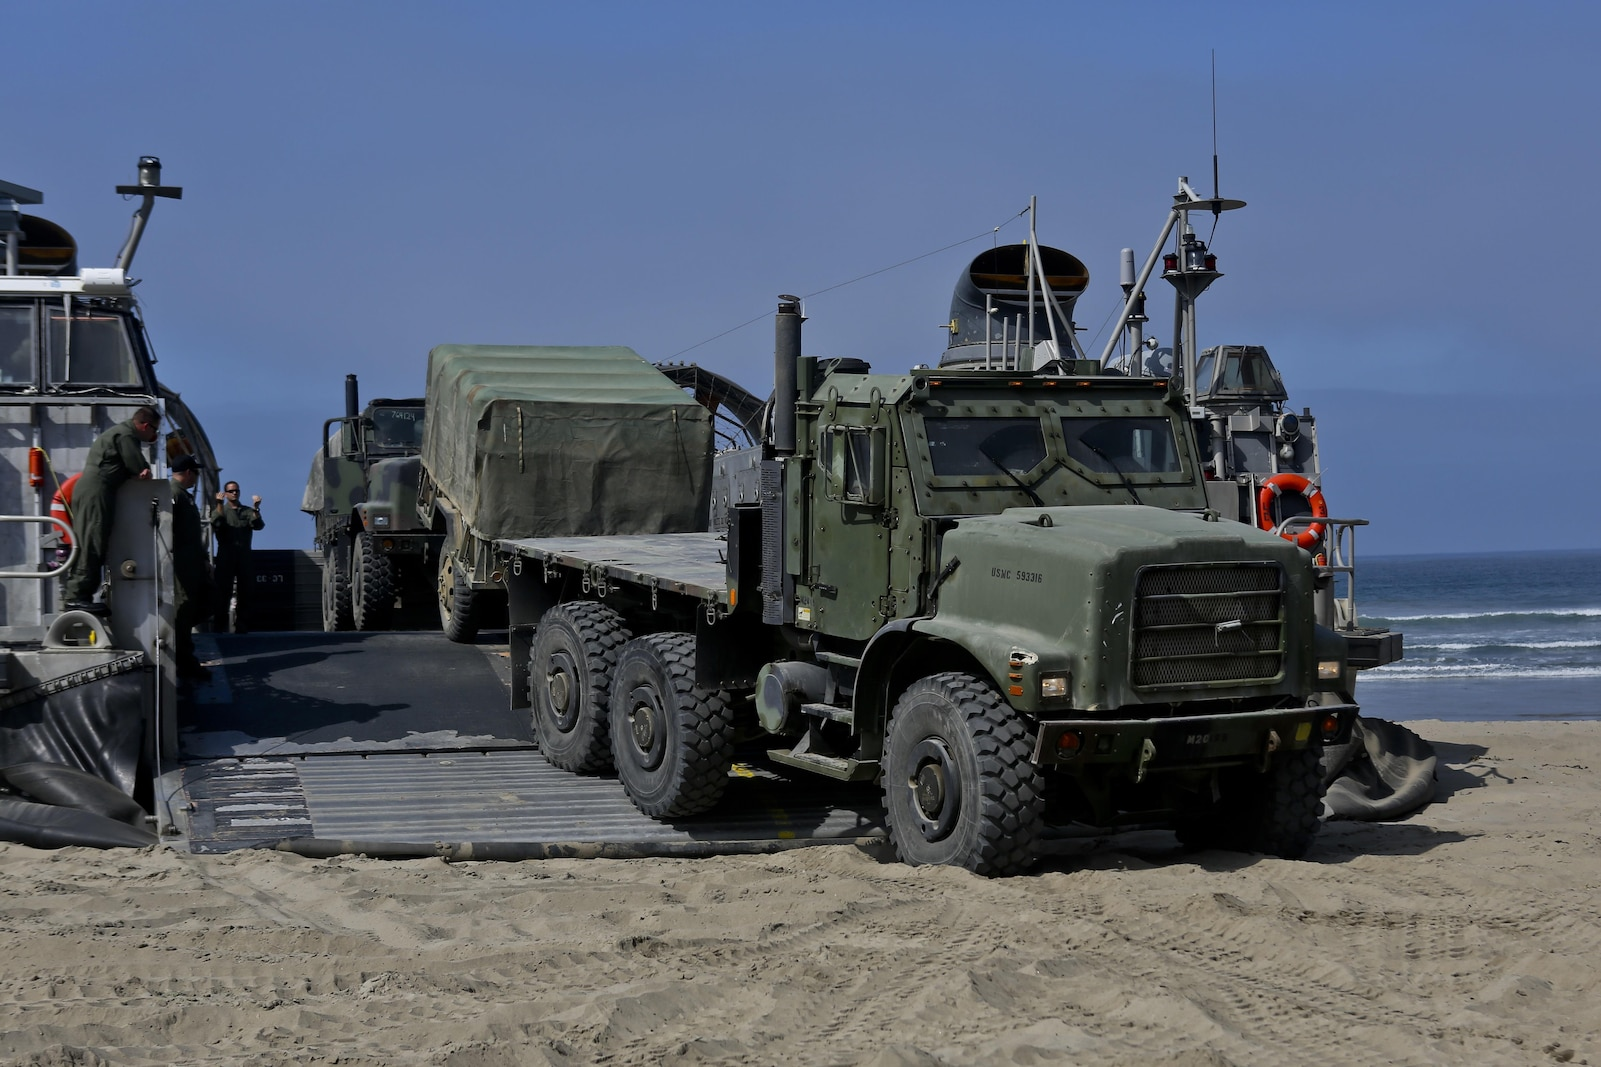 A Landing Craft Air Cushioned vehicle from Assault Craft Unit 5 unloads a Medium Tactical Vehicle Replacement onto Red Beach as part of a loading exercise along side Combat Logistics Battalion 11, Headquarters Regiment, 1st Marine Logistics Group, aboard Camp Pendleton, Calif., June 23, 2015. This loading exercise reinforces the Marine Corps' role as an amphibious force in readiness by maintaining capabilities through realistic training.(U.S. Marine Corps photo by Lance Cpl. Lauren Falk/Released)